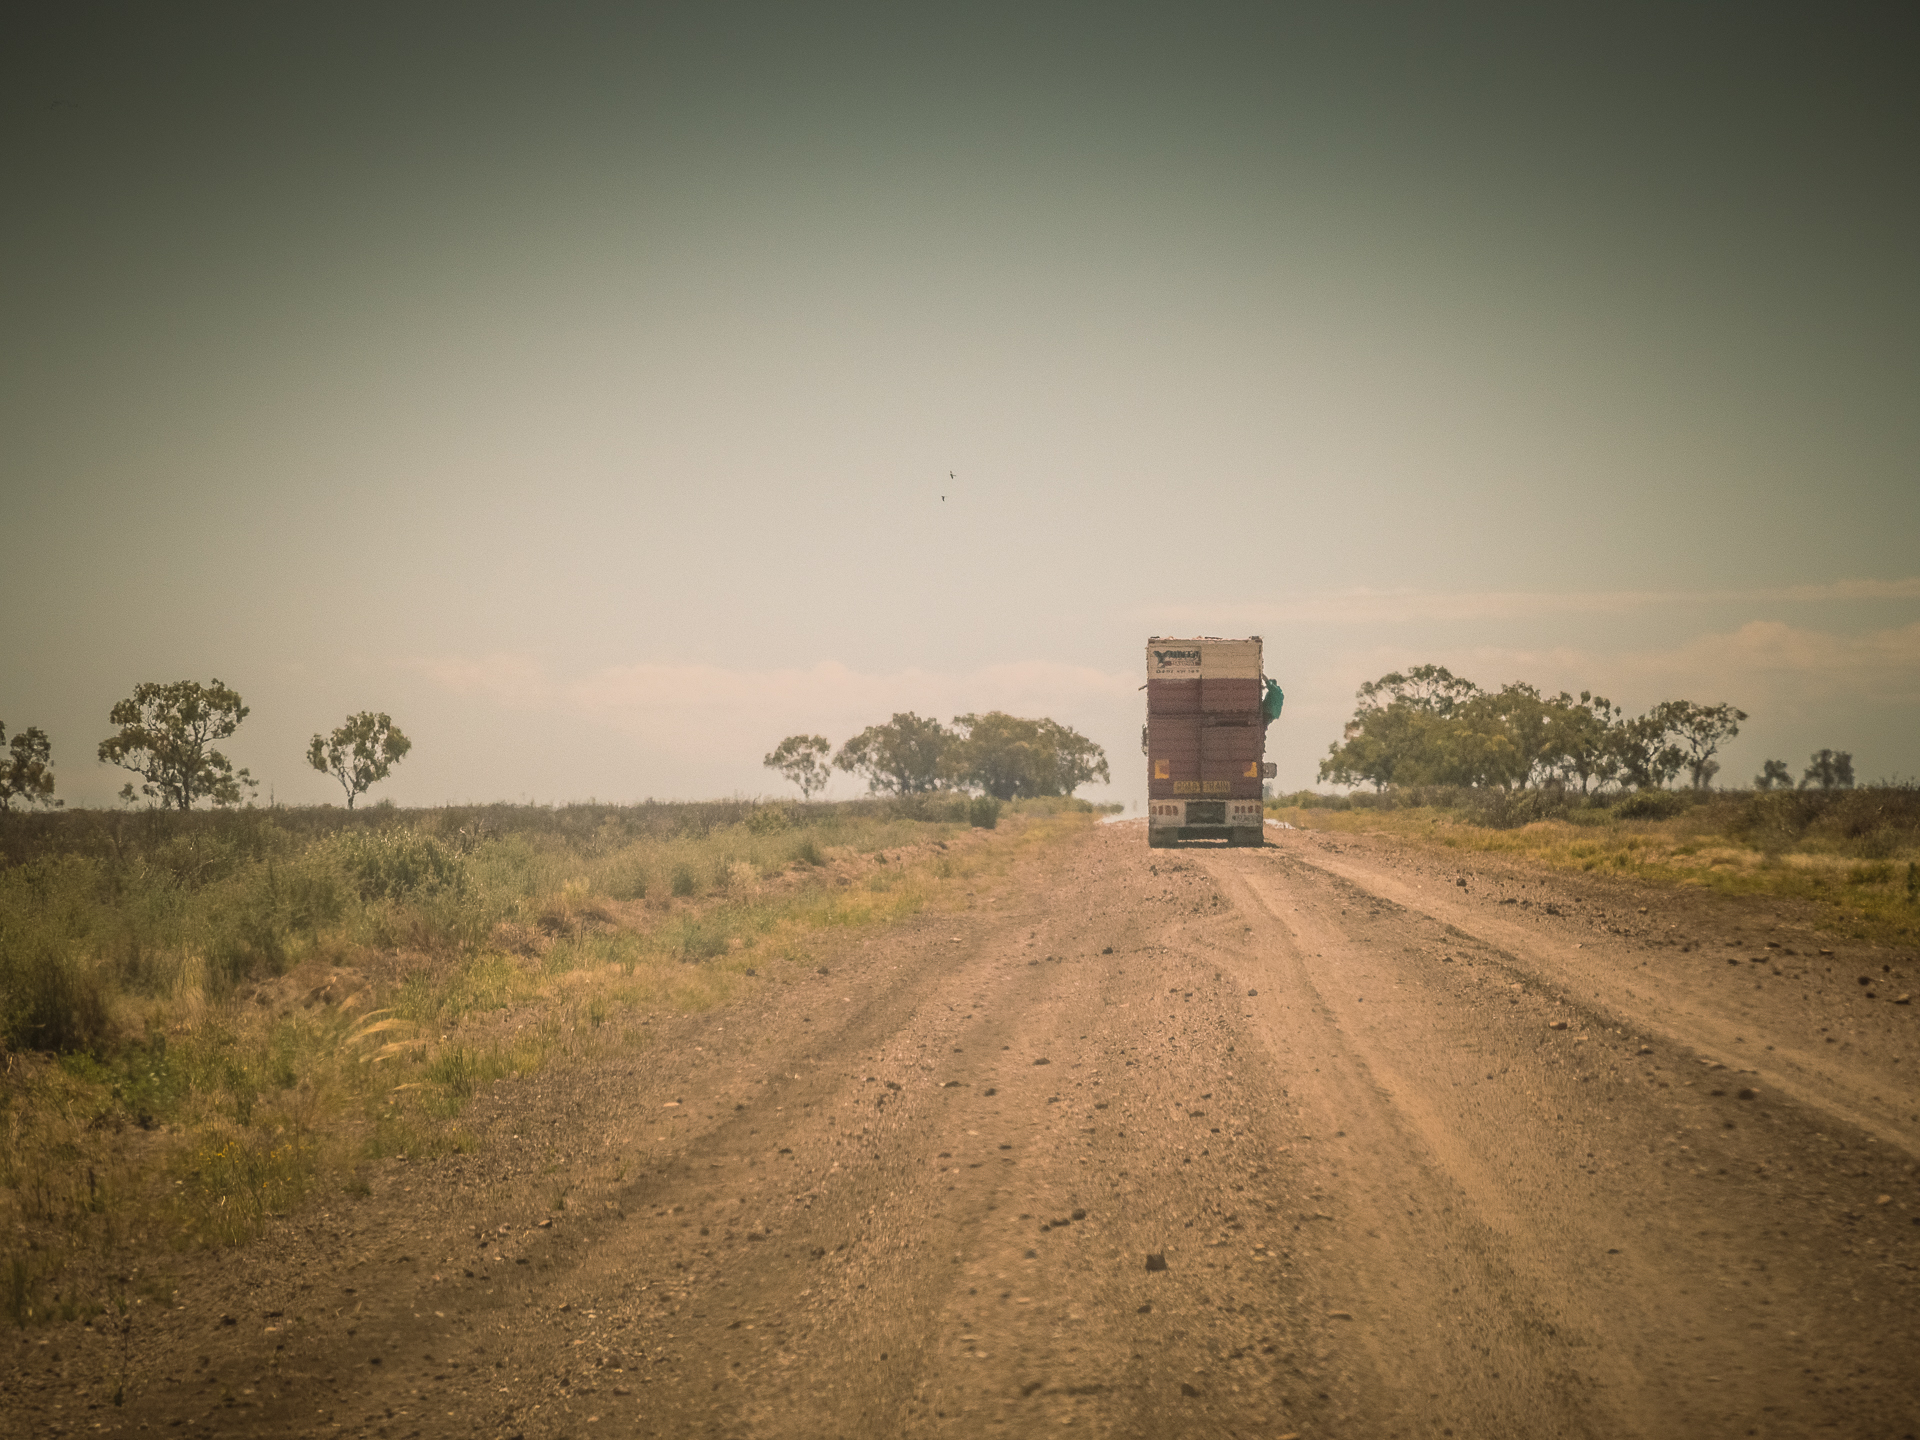 Stock truck stopped on side of road